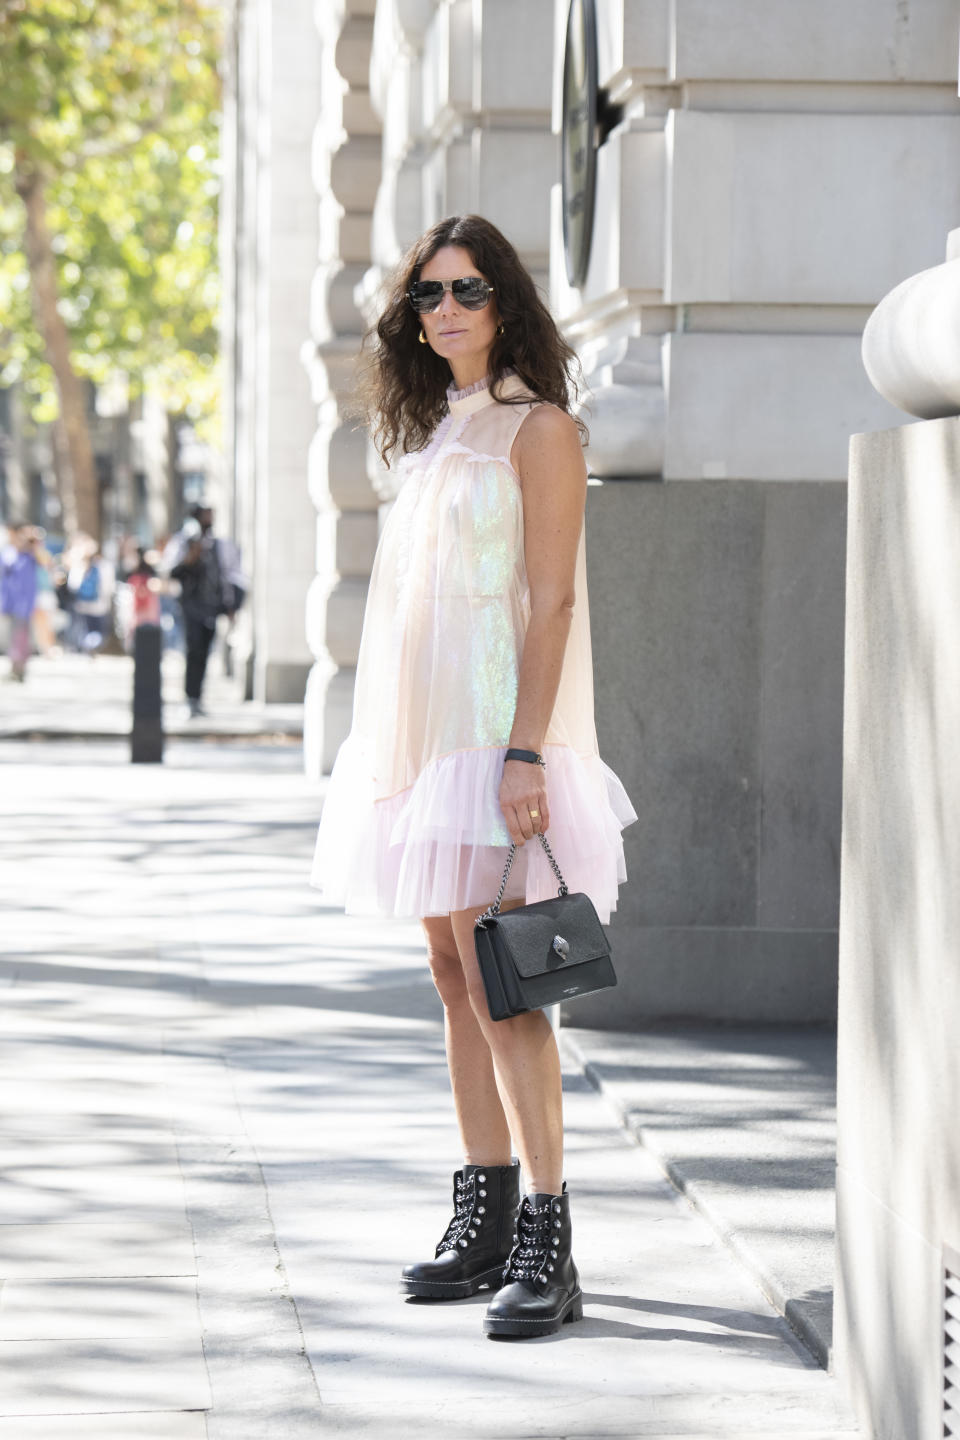 """Hedvig Sagfjord Opshaug is seen wearing Givenchy sunglasses, Bora Aksu dress and Kurt Geiger boots and bag. <a href=""""https://fave.co/2ZQU1on"""" rel=""""nofollow noopener"""" target=""""_blank"""" data-ylk=""""slk:Shop the boots here"""" class=""""link rapid-noclick-resp"""">Shop the boots here </a>[Photo: Getty Images]"""